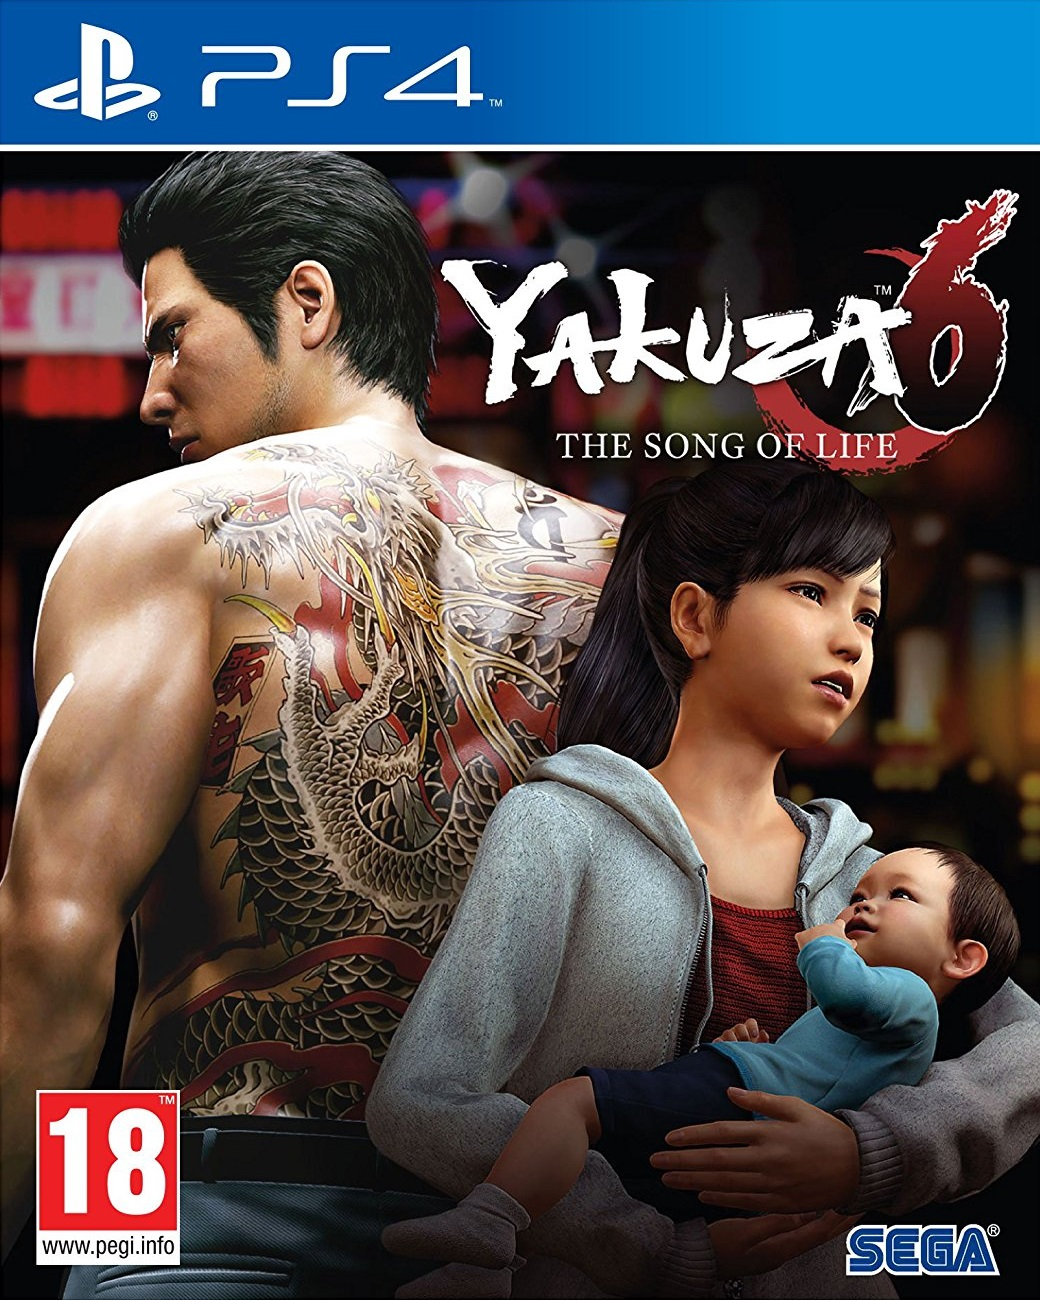 Yakuza 6: The Song of Life Essence Art Edition - PlayStation 4 Játékok